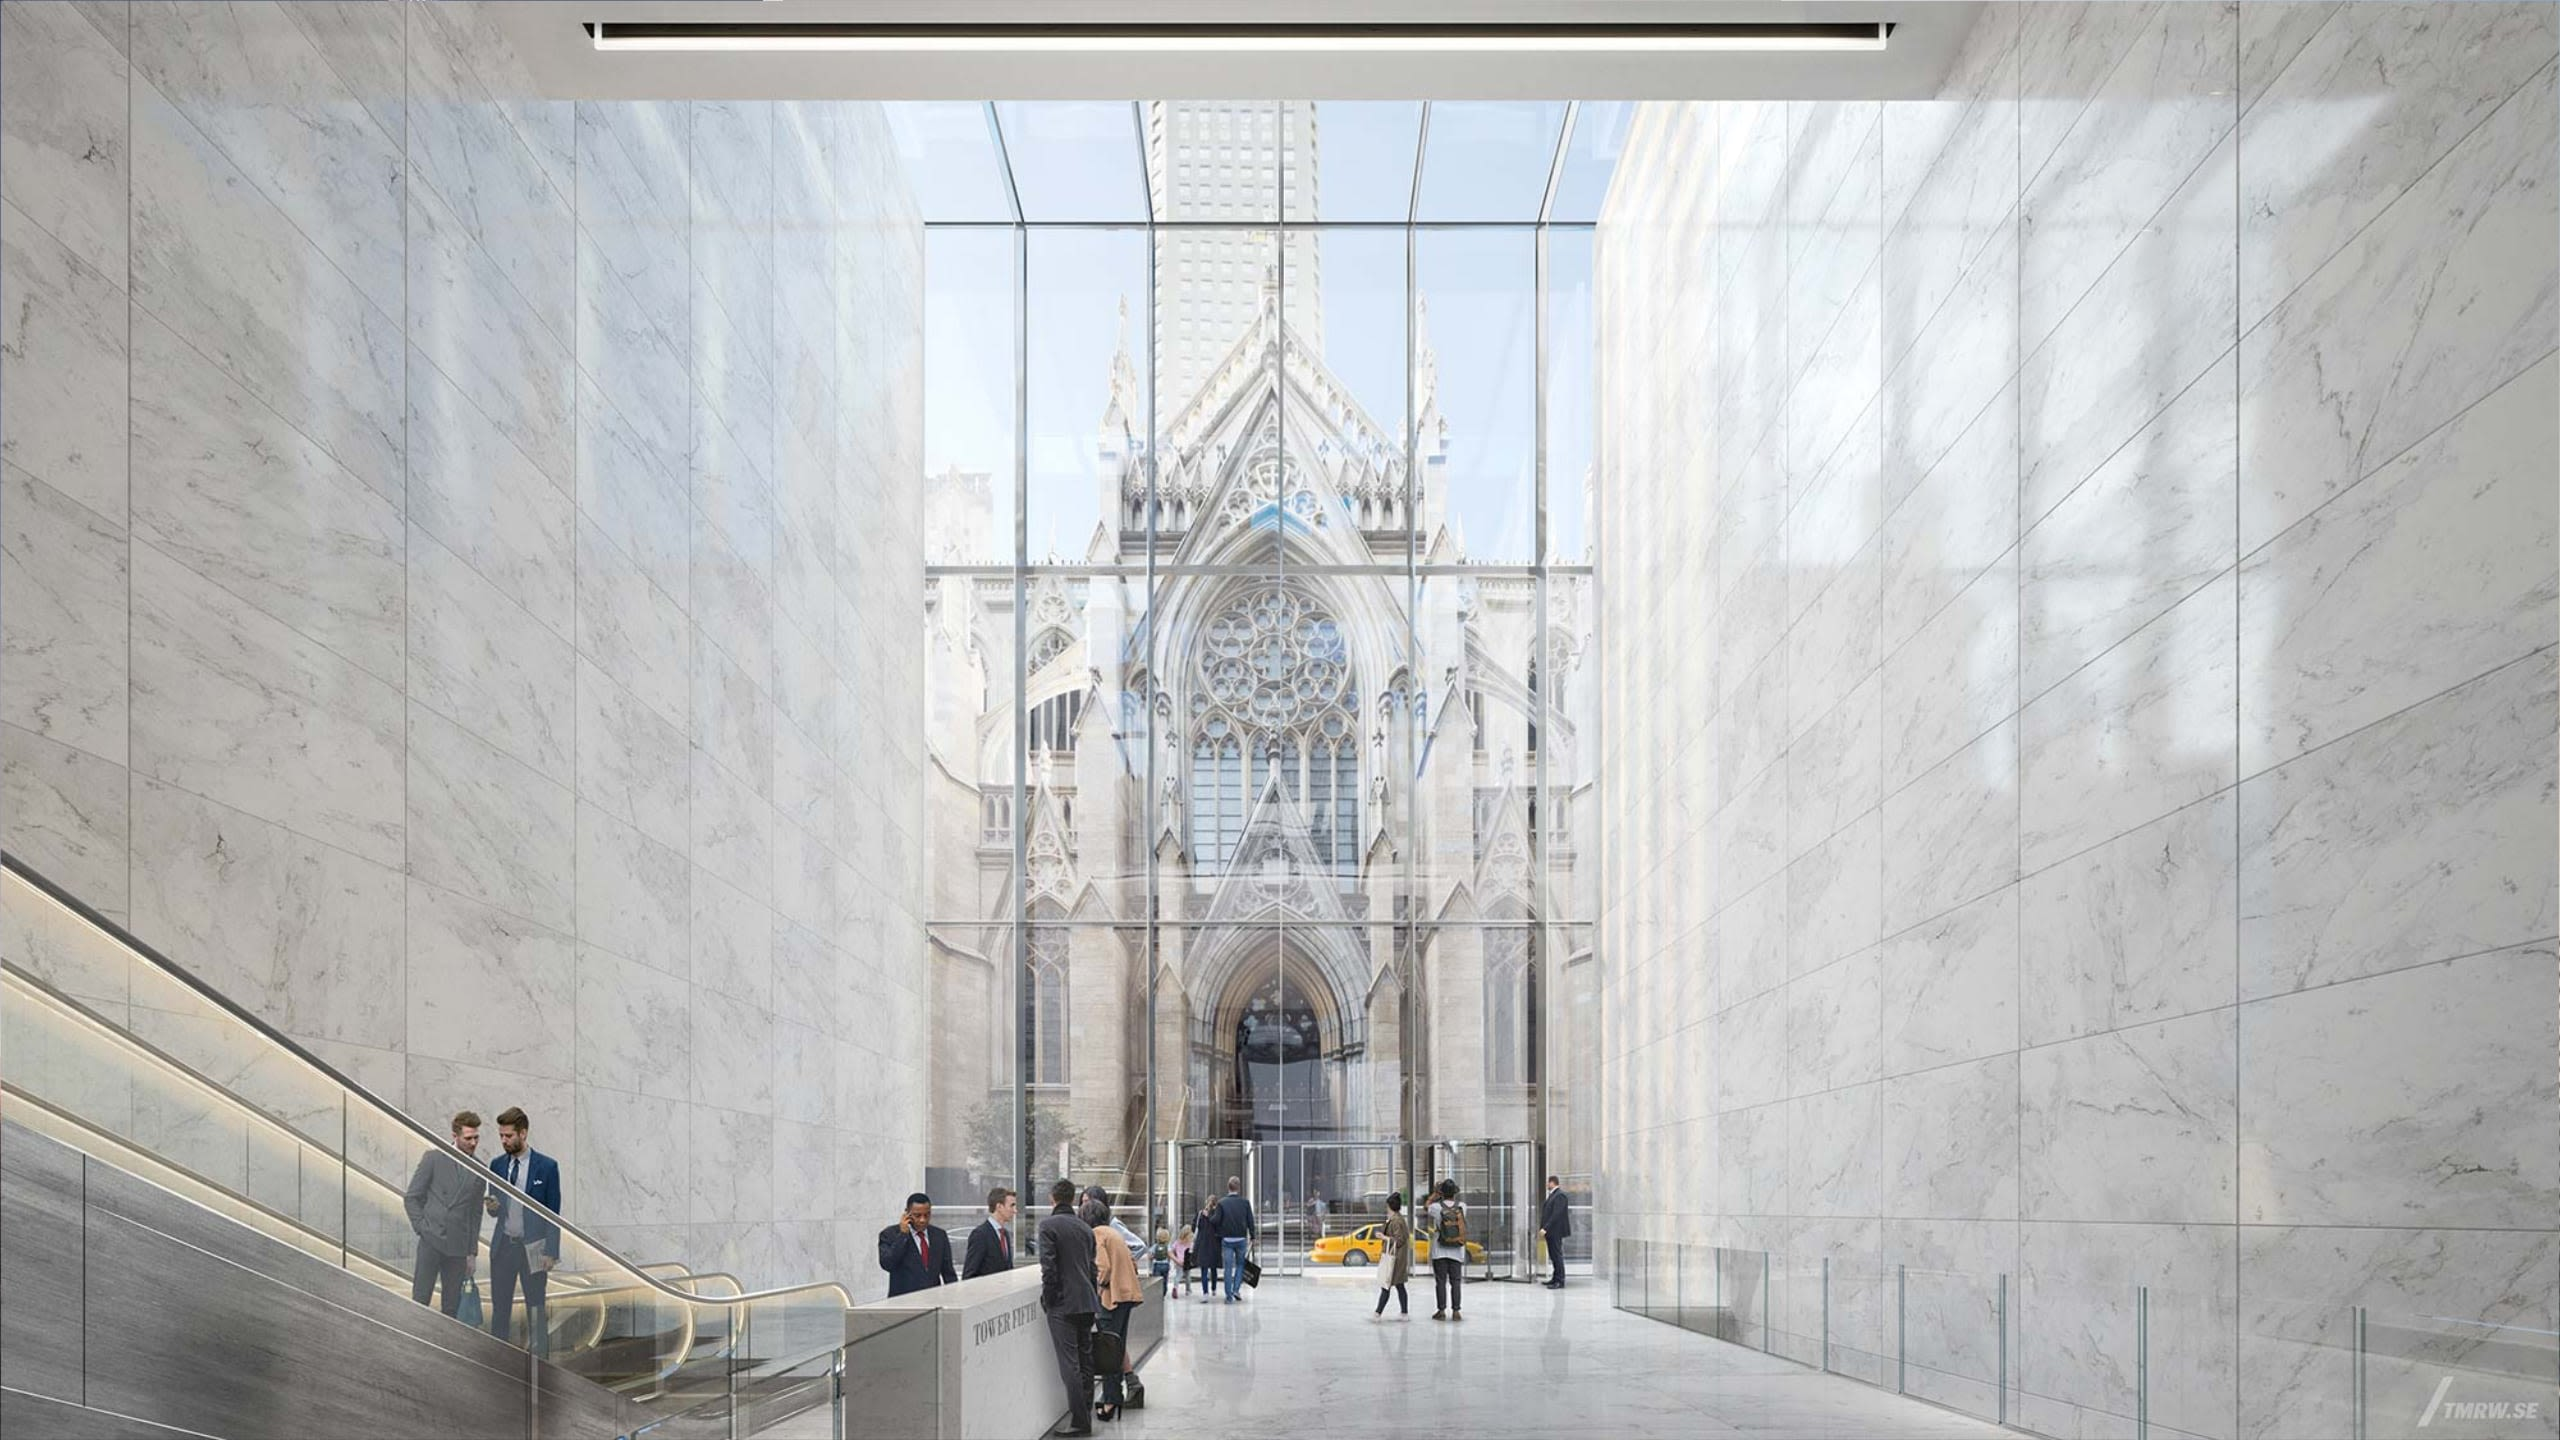 The lobby of Tower Fifth would frame an entrance to St. Patrick's Cathedral.